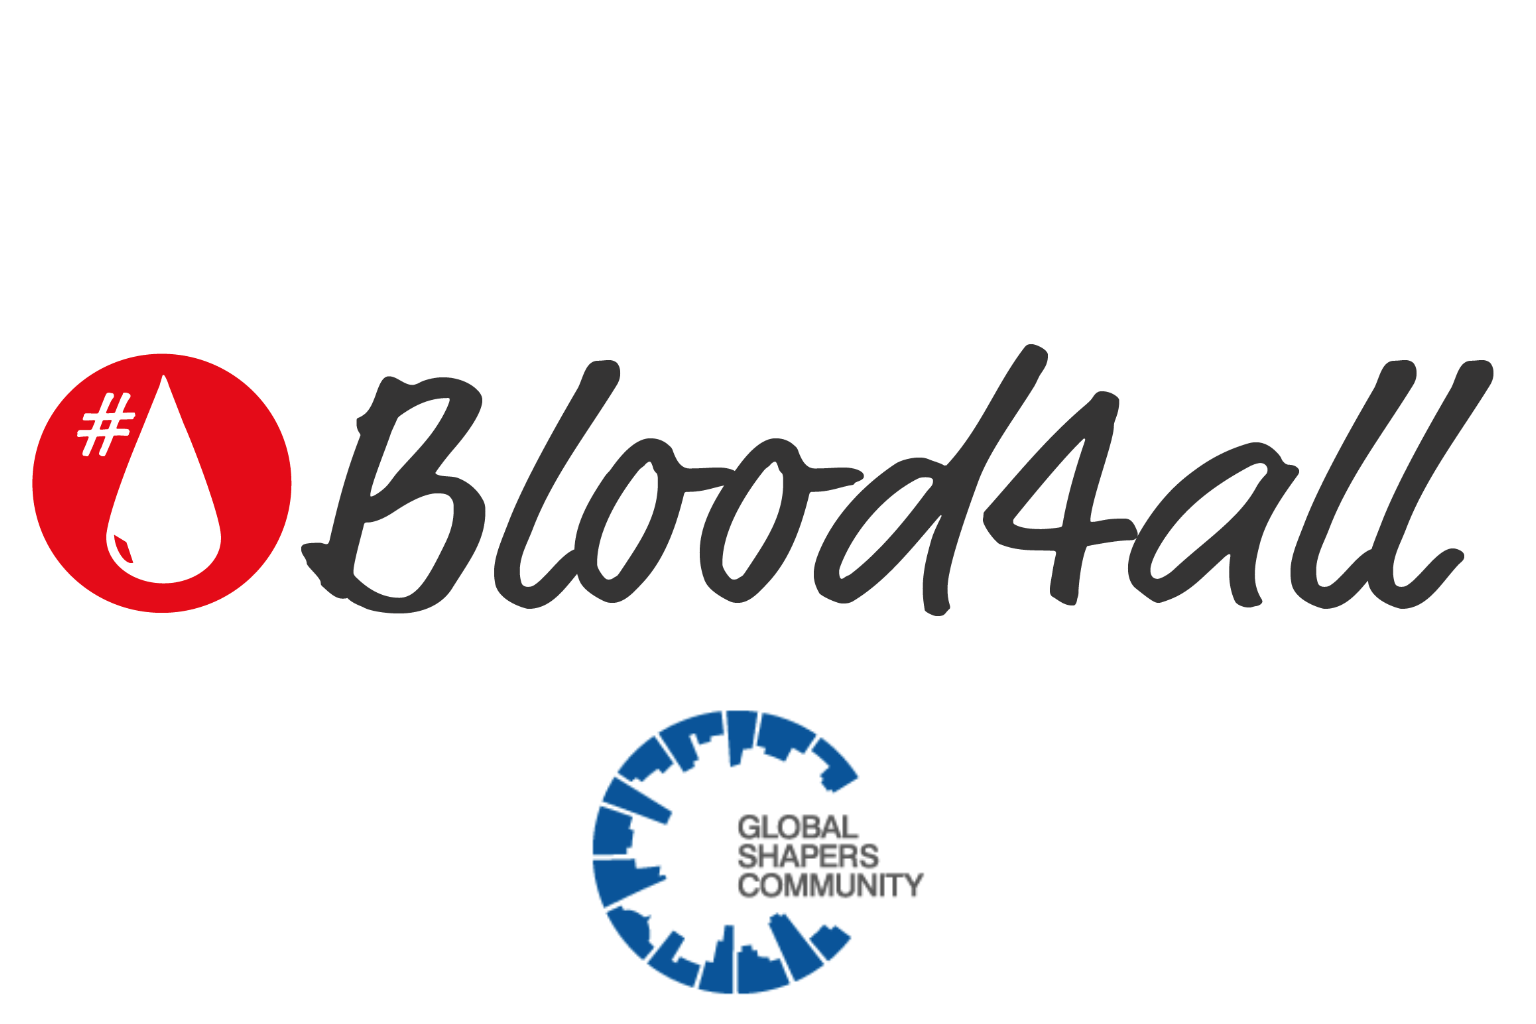 blood4all-logo.png